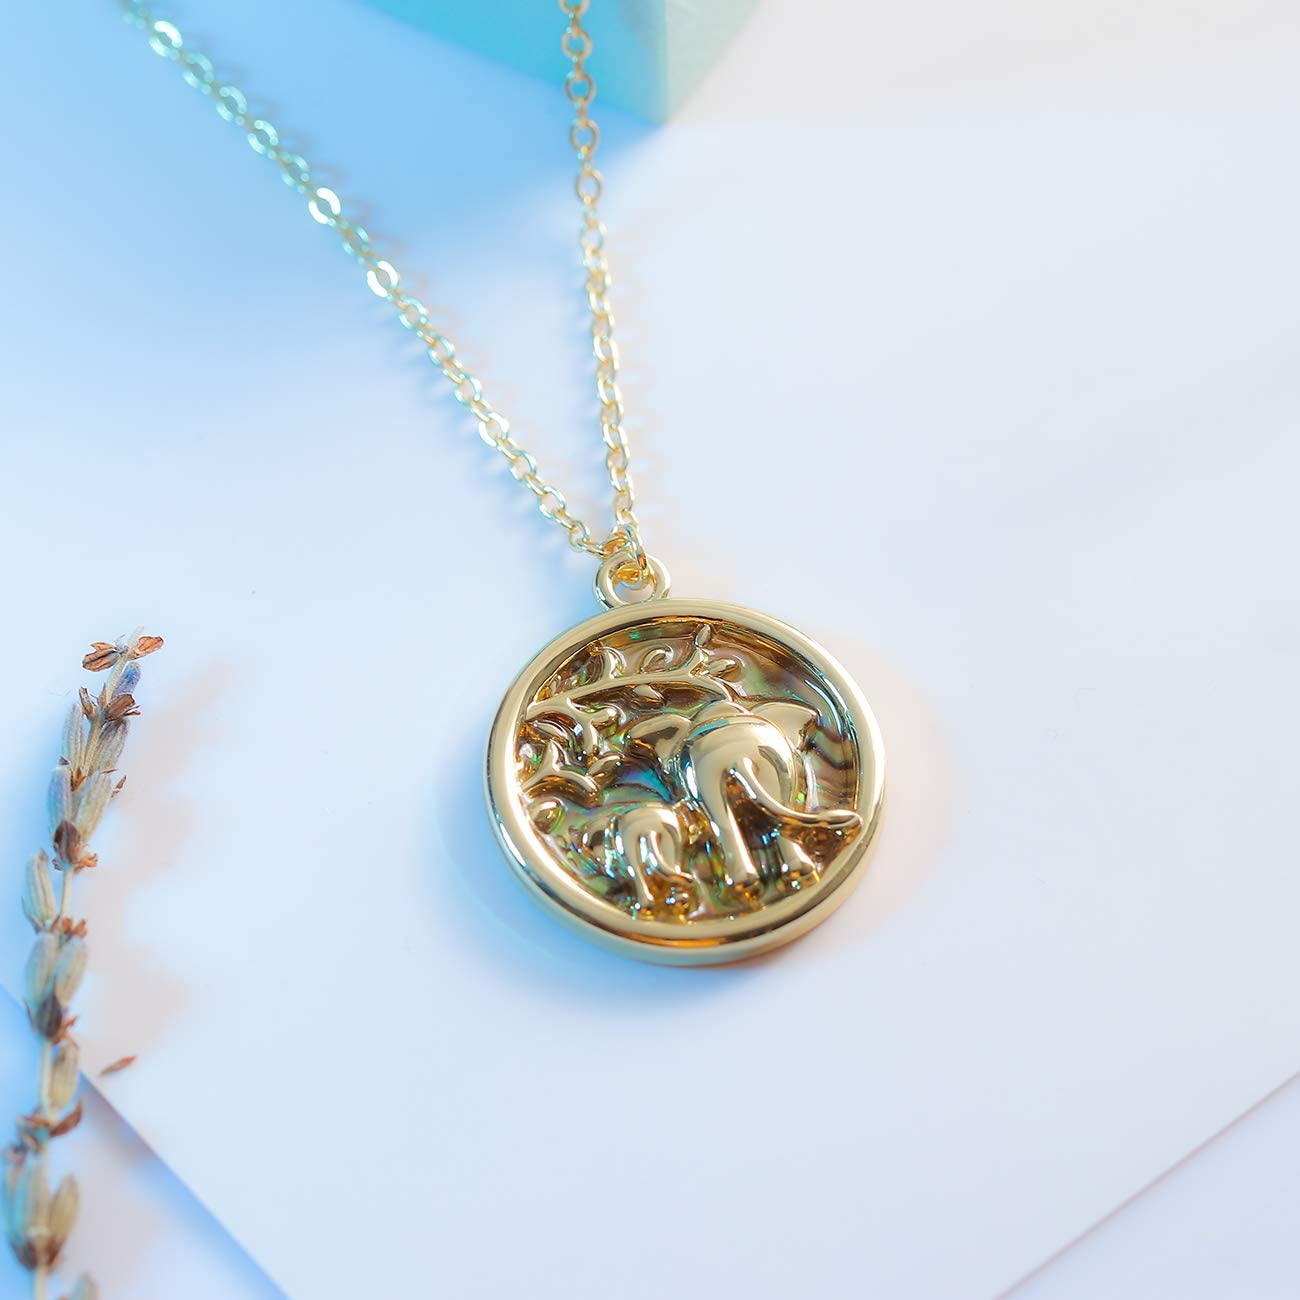 PANGRUI Nature Abalone Paua Shell Elephants and Baby Elephant with Deliacate Branches Reversible Round Circle Pendant Necklace Gifts for Anyone Animal Pendant